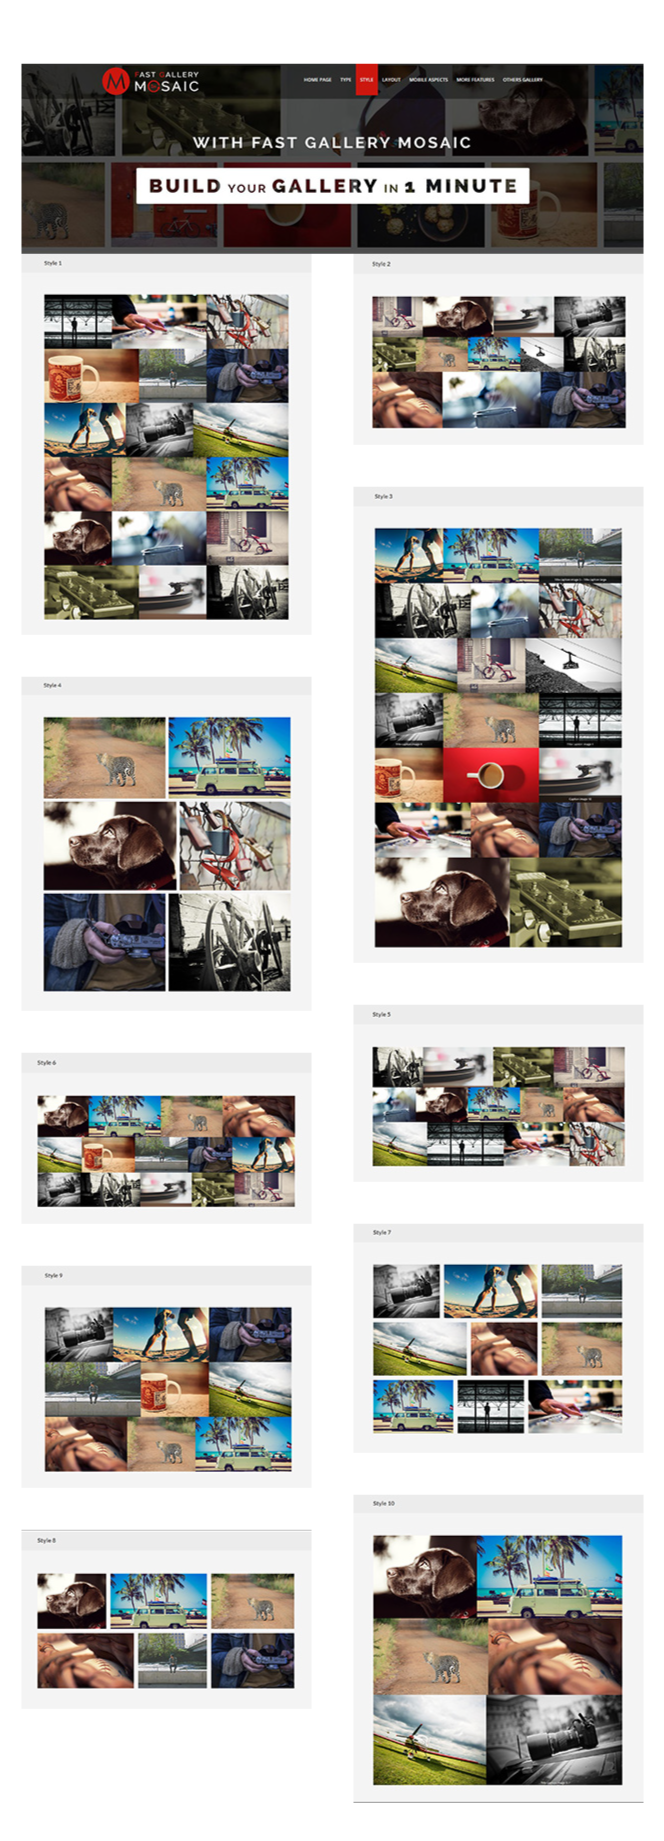 Fast Gallery Mosaic - WordPress Plugin 3